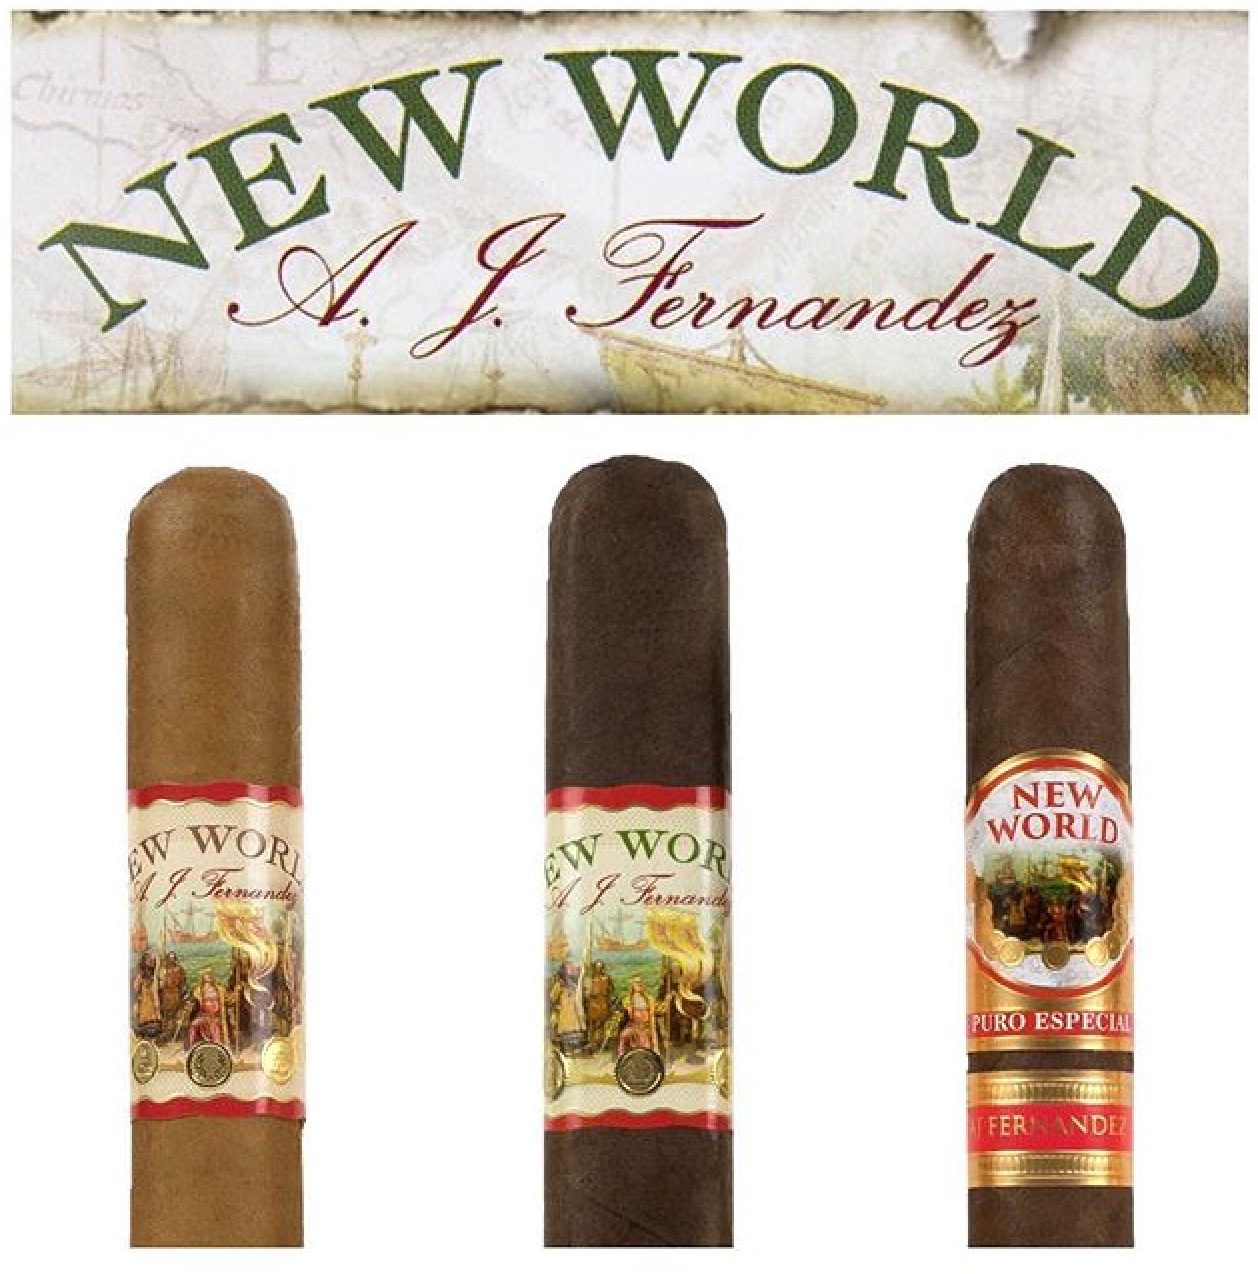 New World by AJ Fernandez Gobernator Toro - 5 Pack - Cigar Journal #1 Cigar of 2014 image